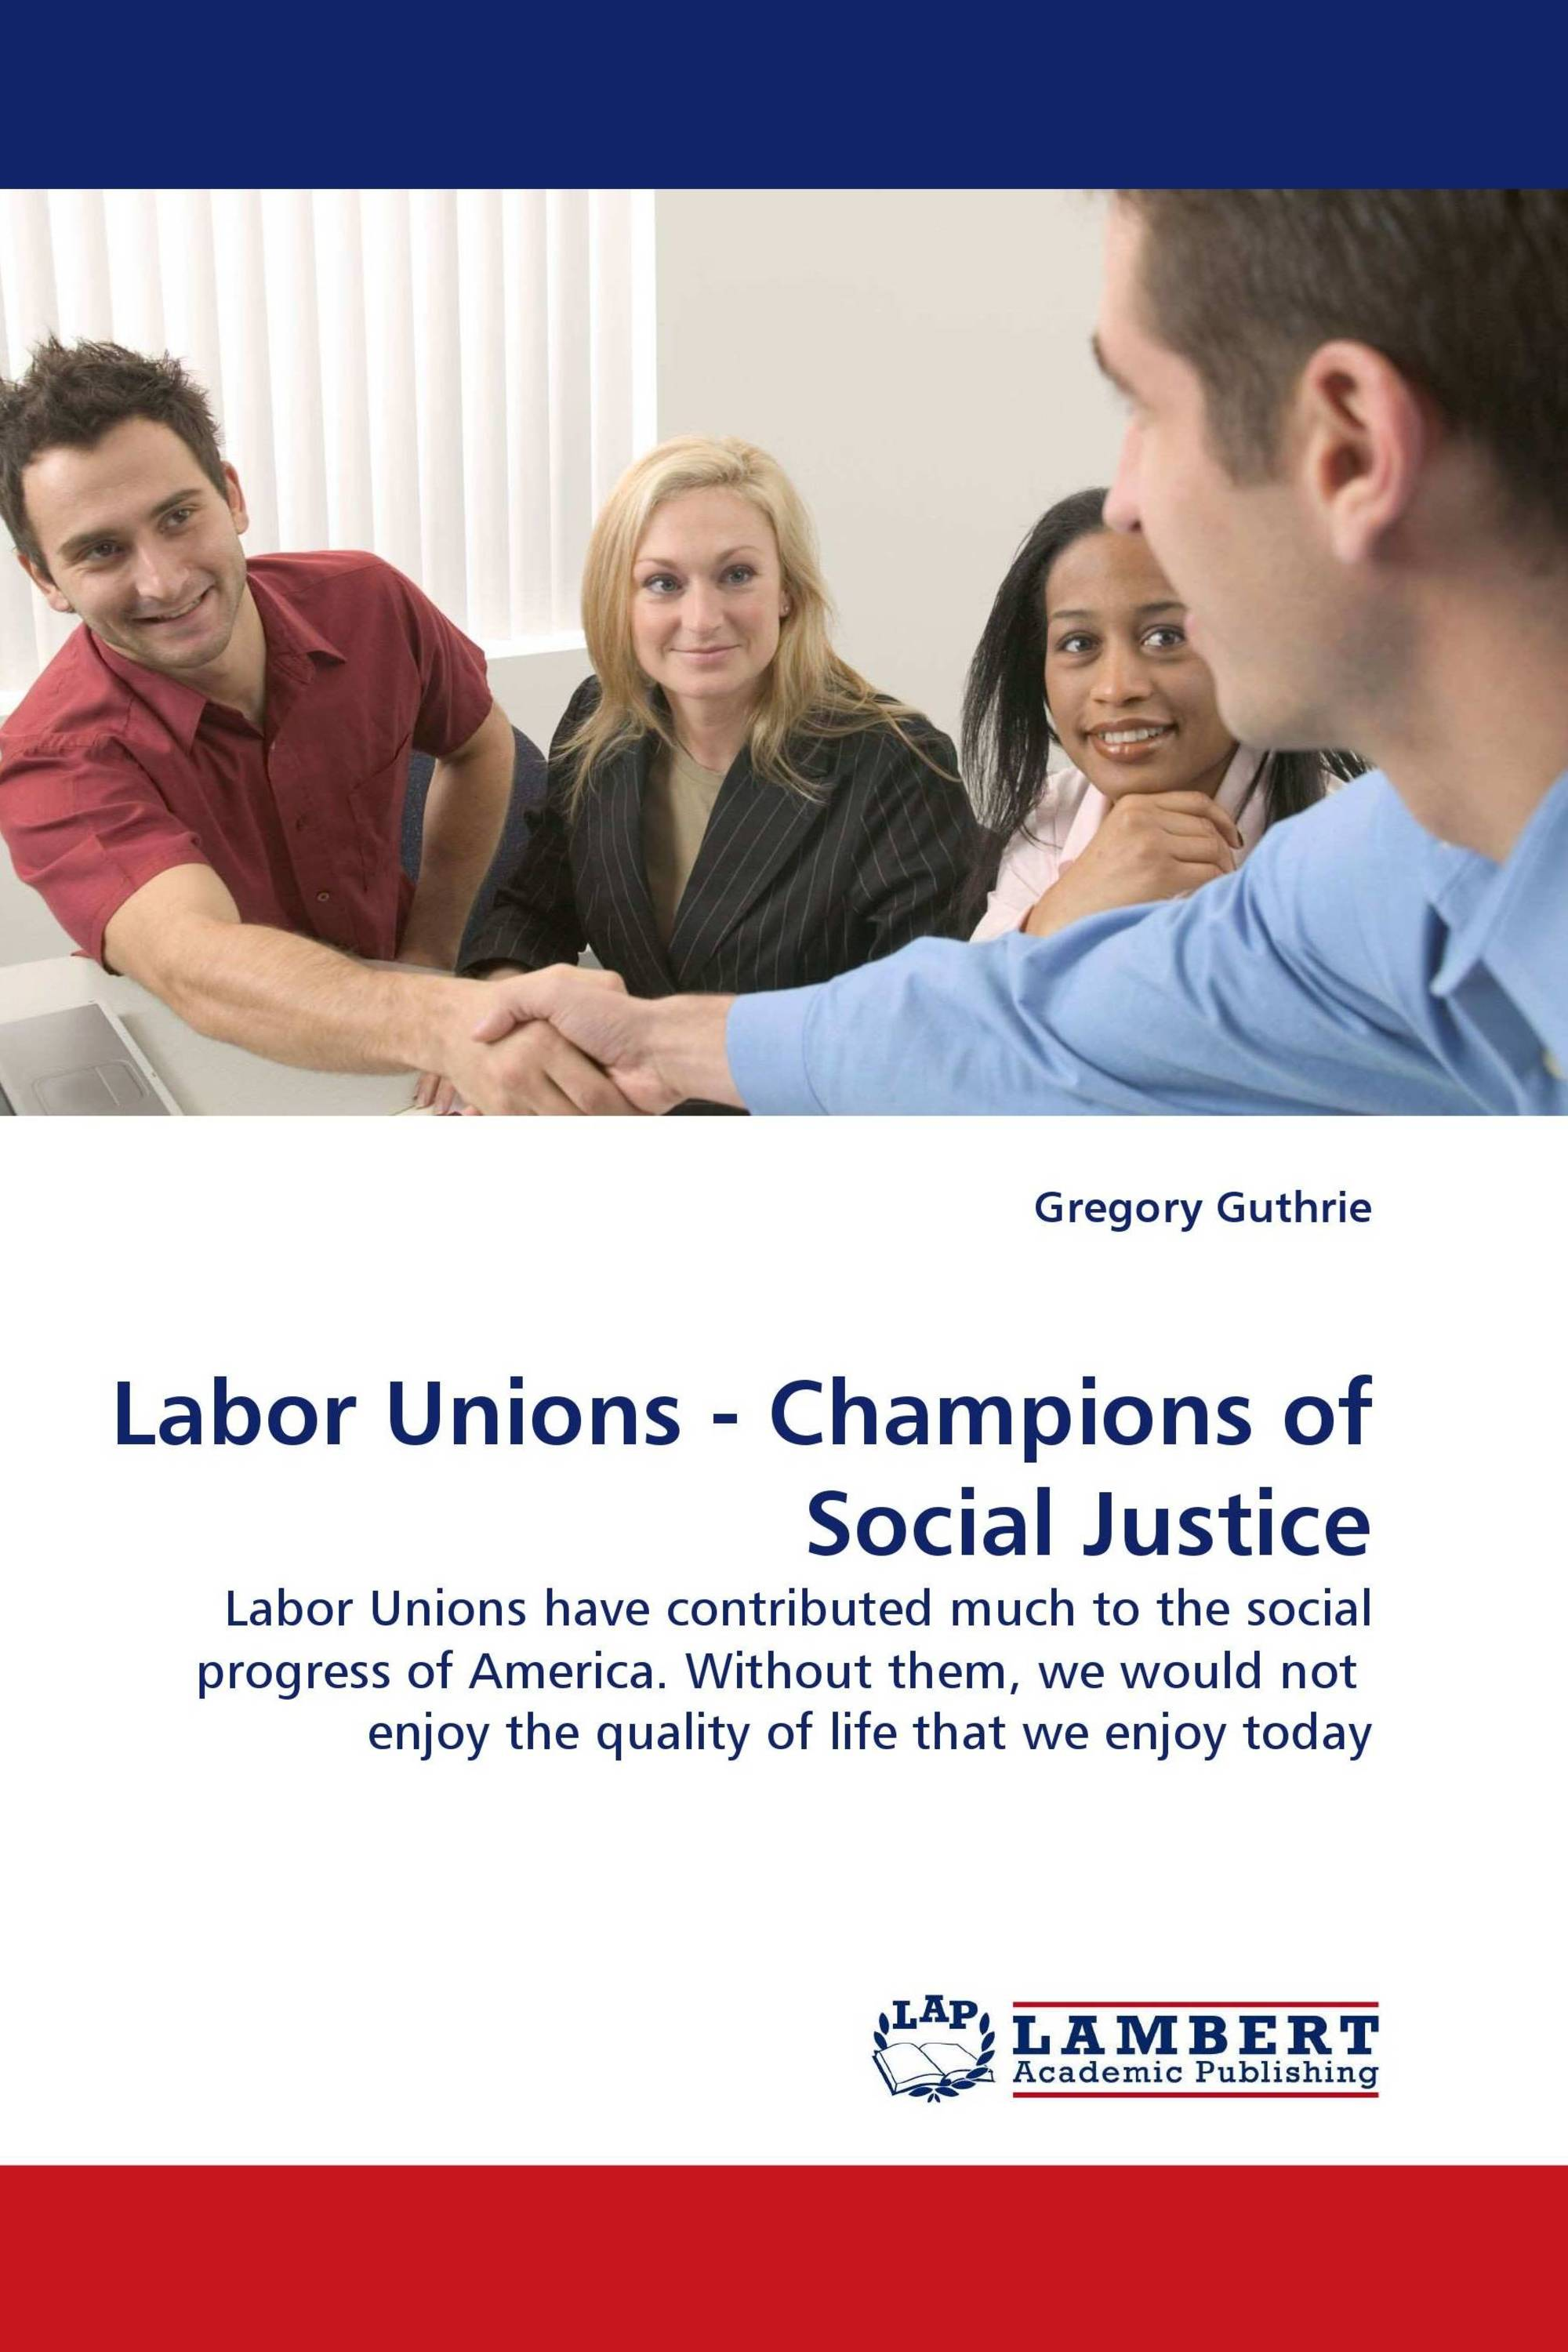 an essay on why unions Unions as collective bargaining units transcend other contextual differences in these countries the second essay analyzes the impact of unions on economic performance of establishments in the manufacturing sector in argentina, bolivia, chile, mexico, panama and uruguay.